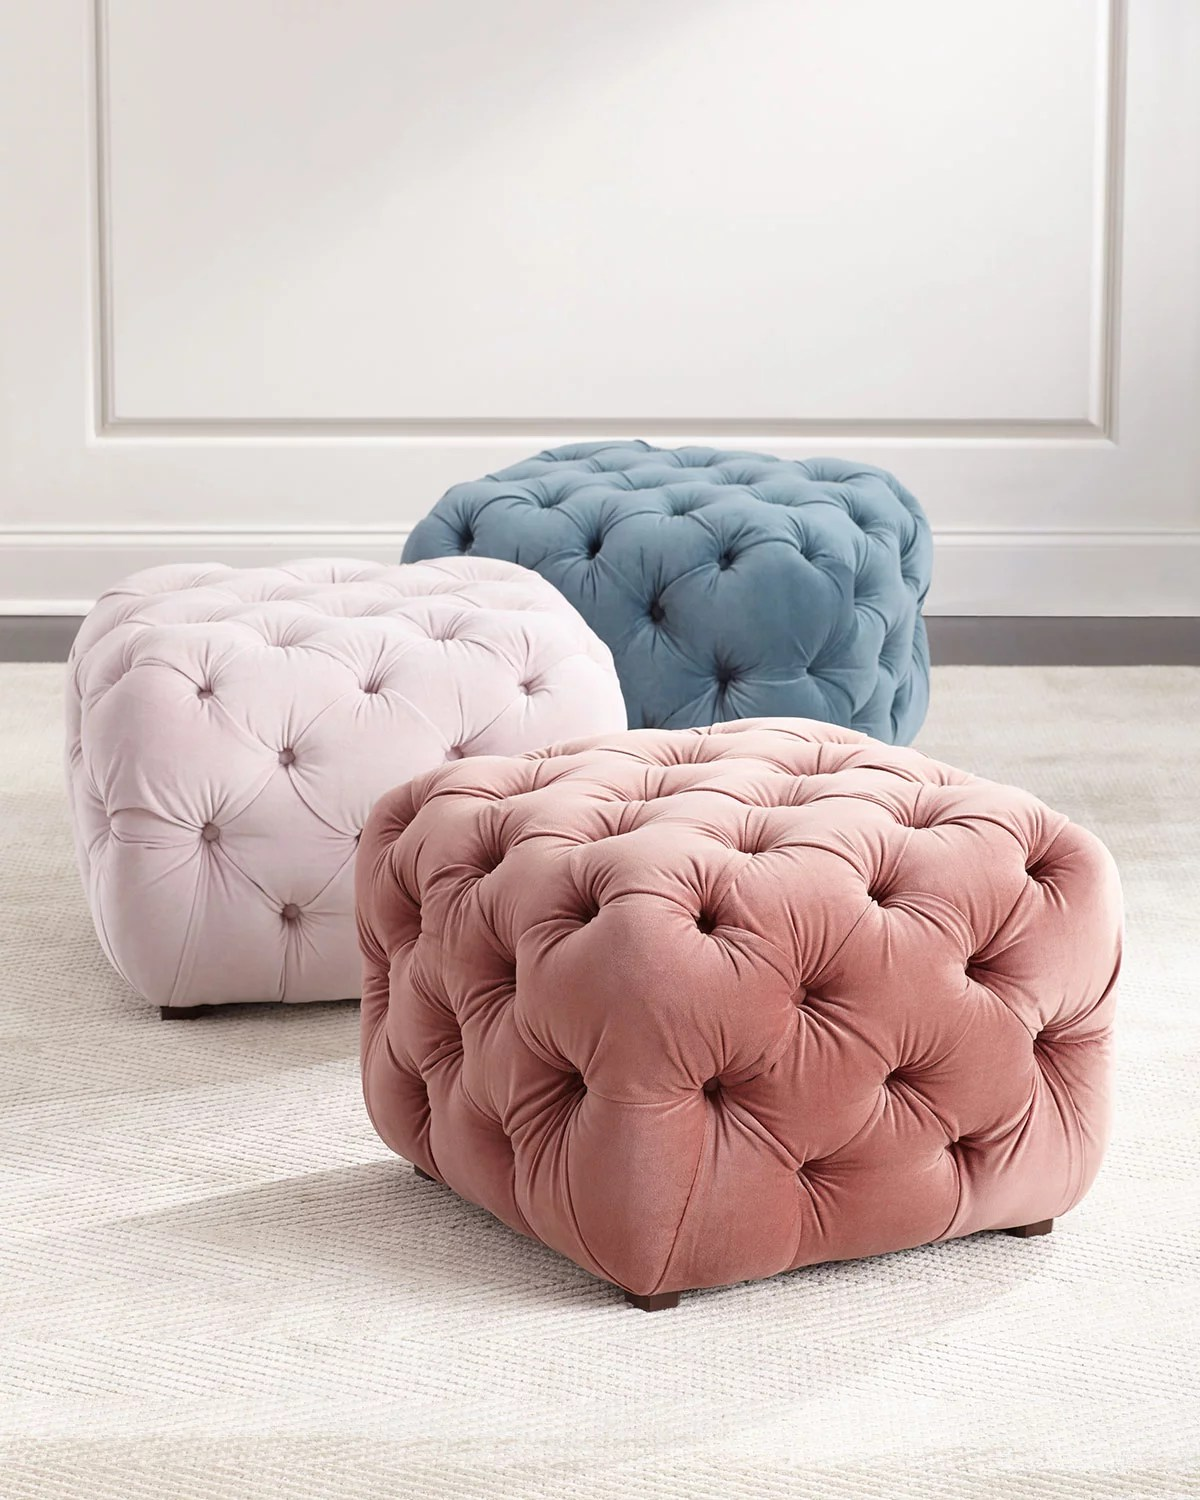 Busby Tufted Cube Ottoman If You Don T Own Any Furniture